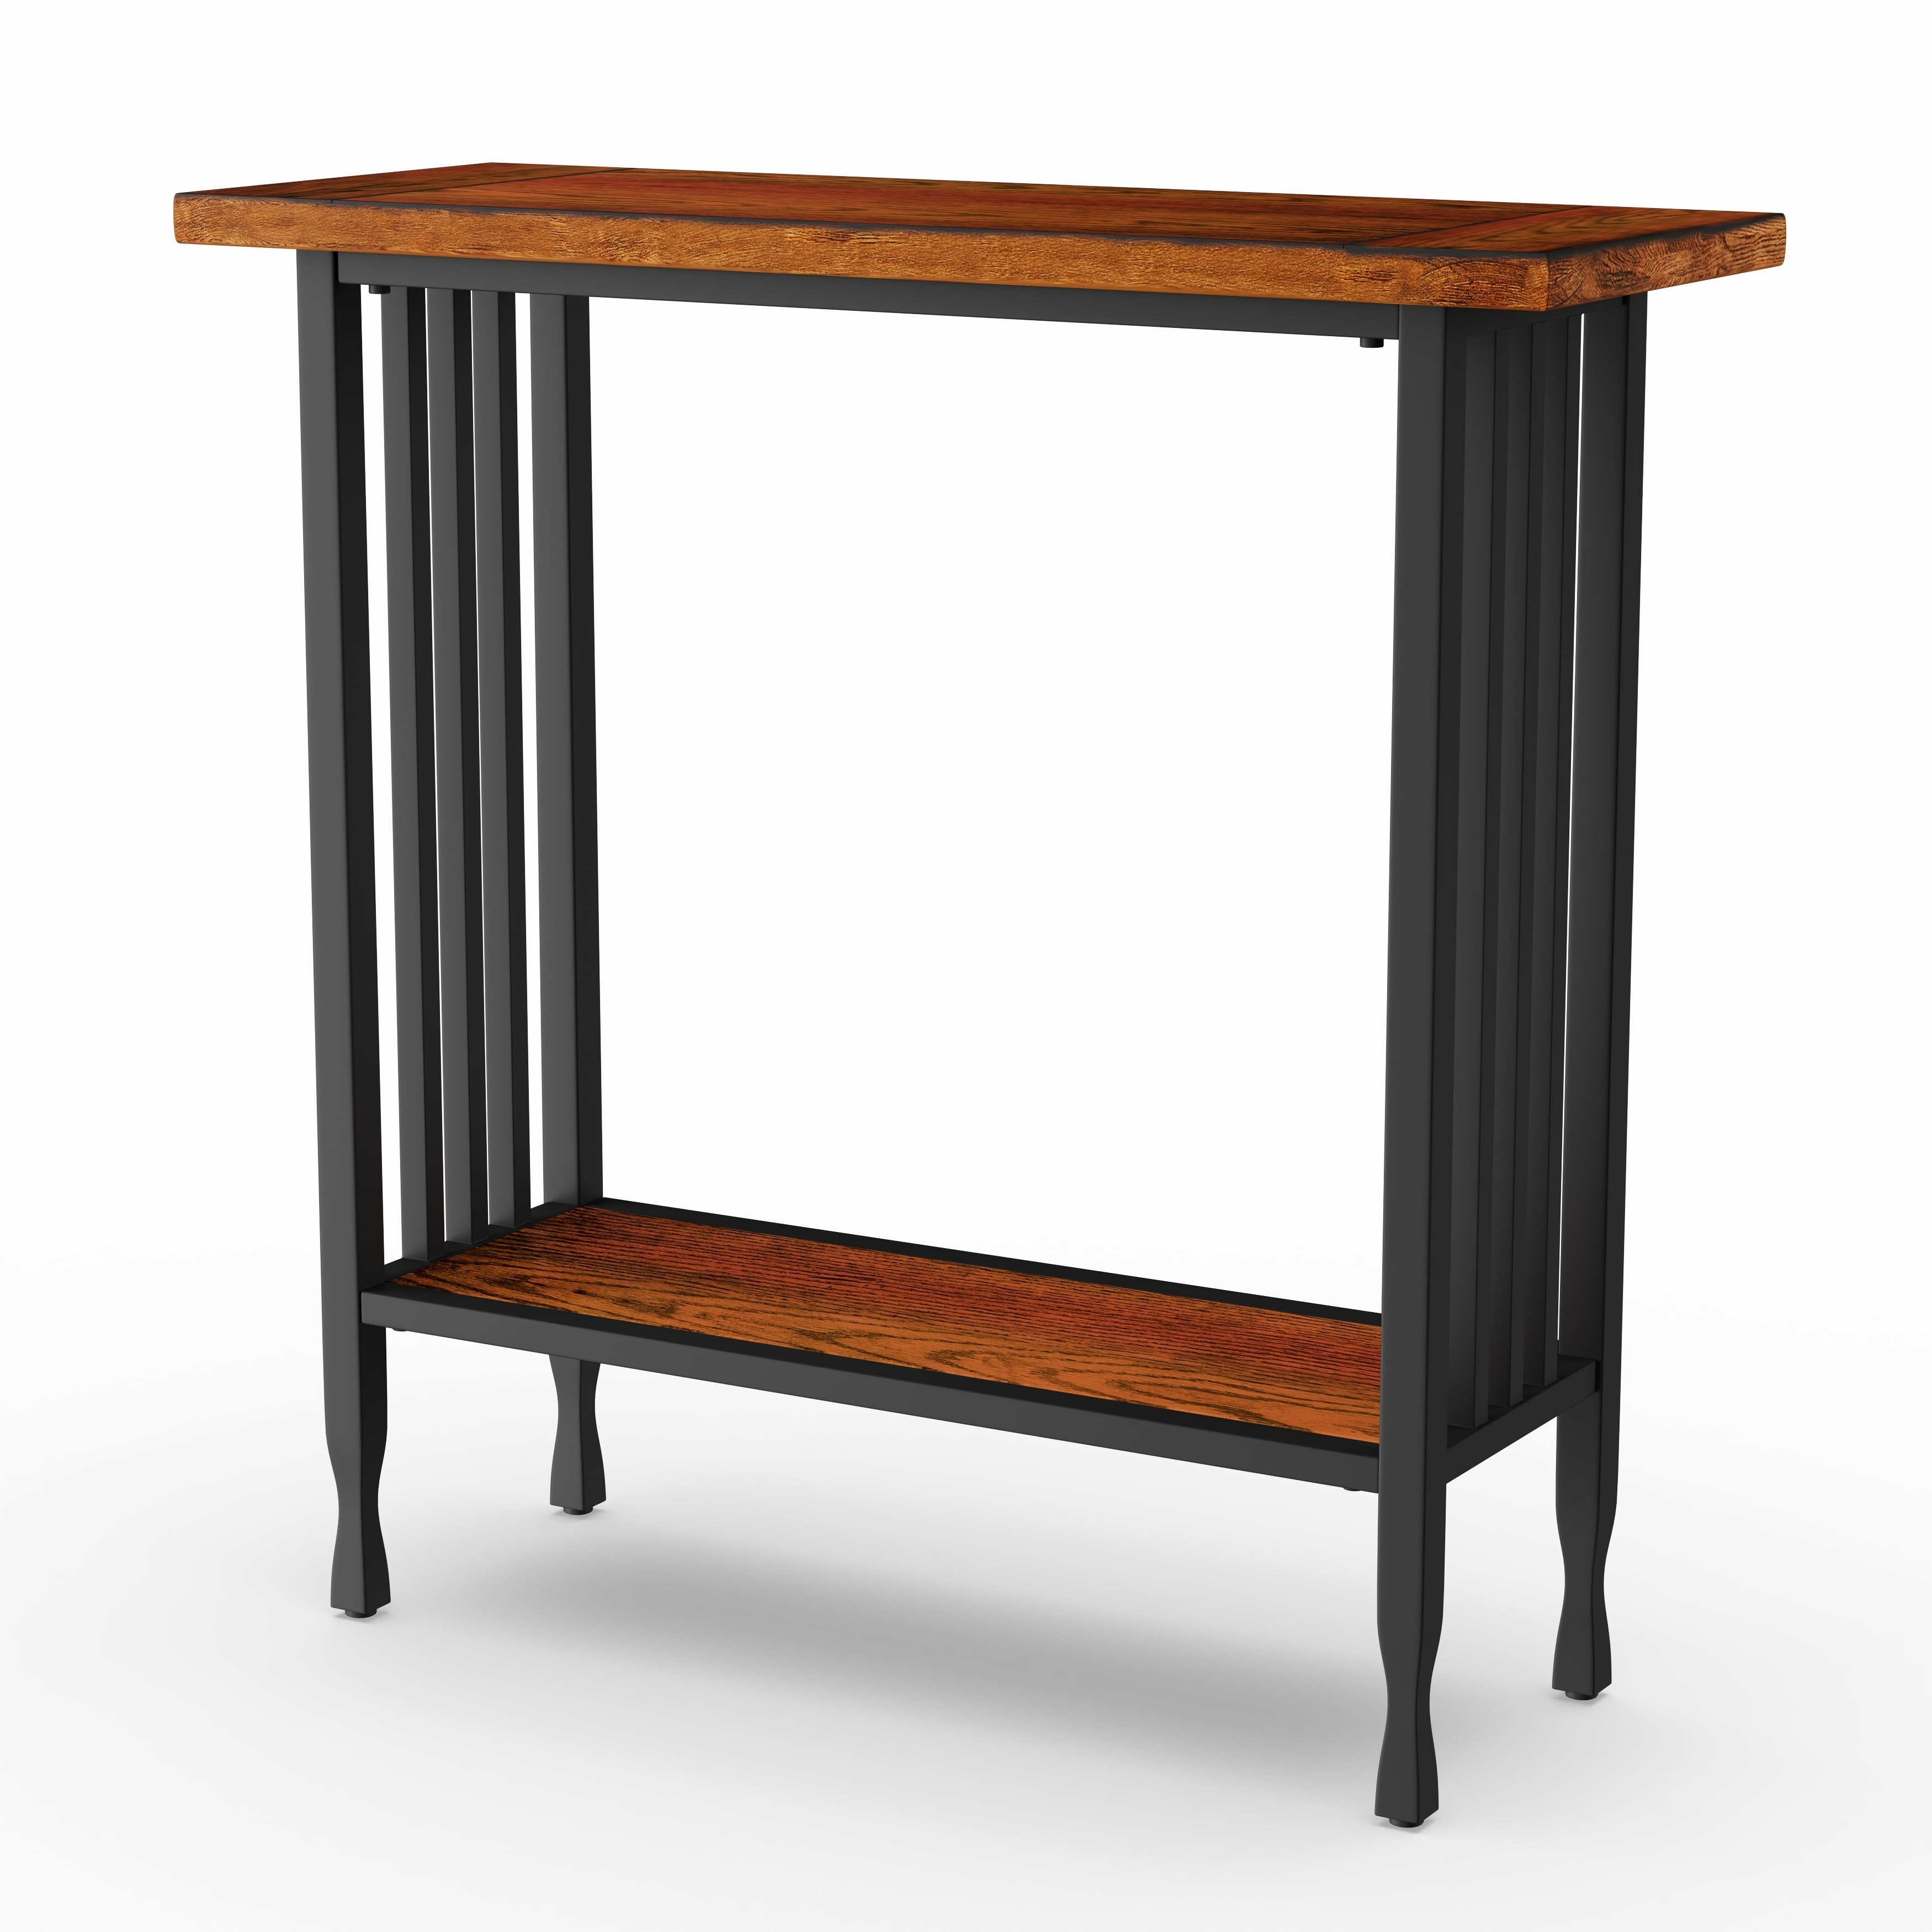 Most Recently Released Carbon Loft Peter Matte Black Slatted Coffee Tables Regarding Carbon Loft Peter Matte Black Slatted Narrow Chairside Table (View 2 of 20)